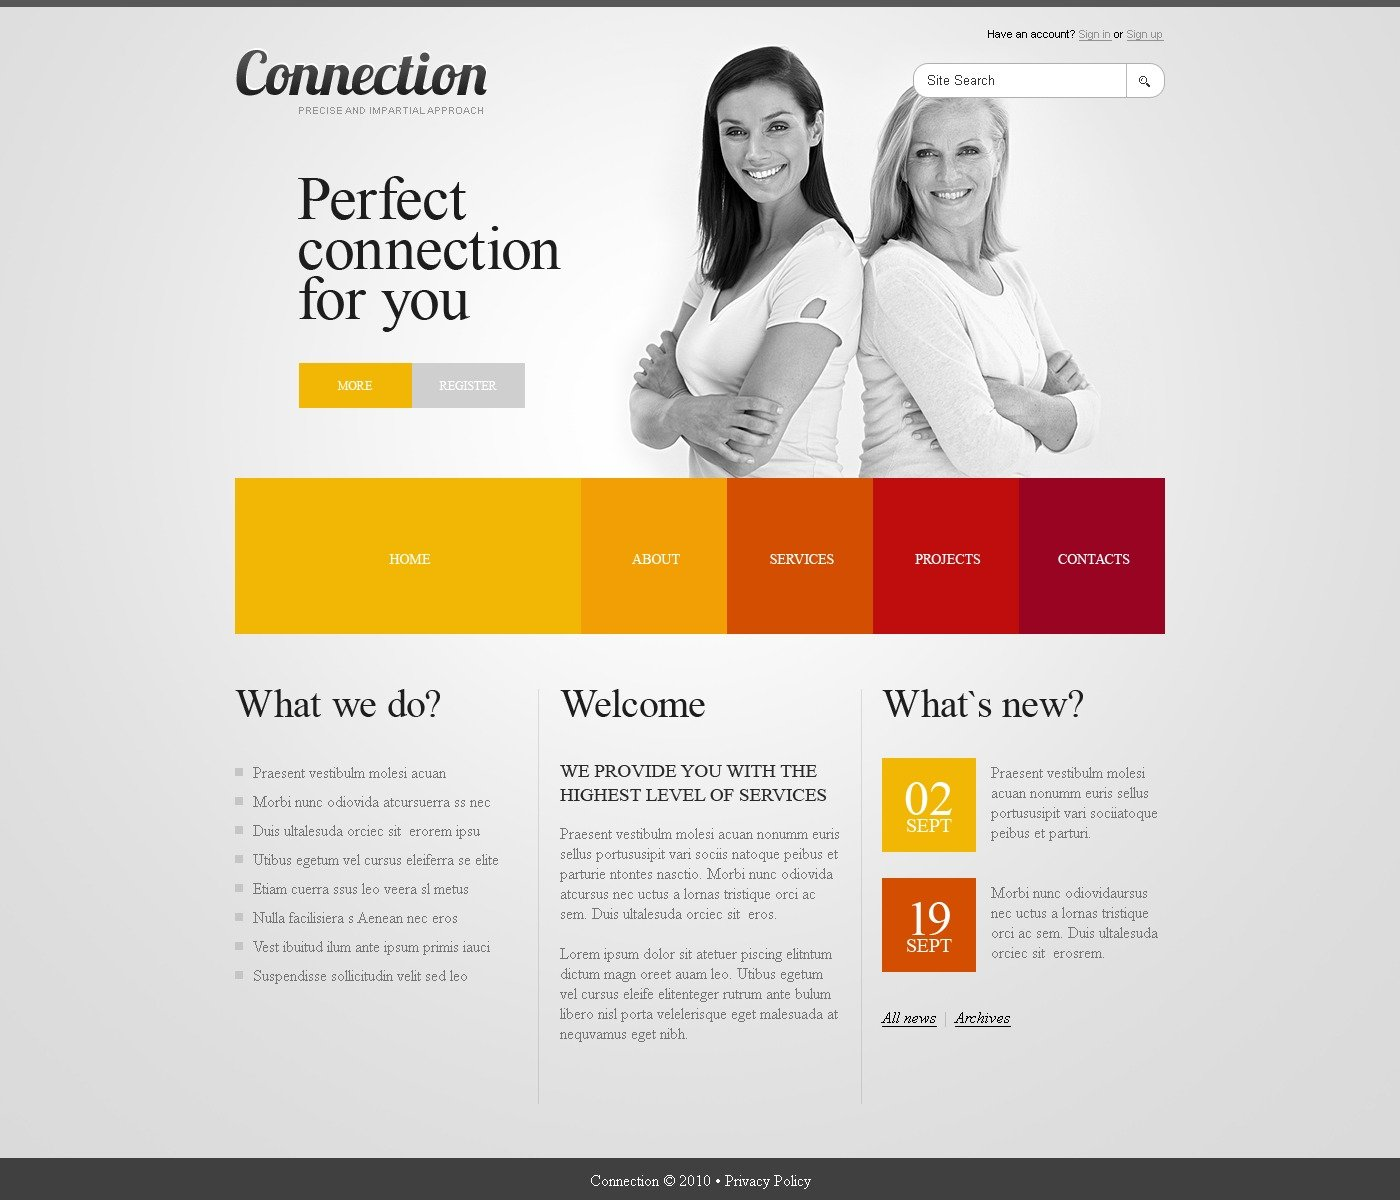 The Connection Communications Company PSD Design 54431, one of the best PSD templates of its kind (wide, jquery, neutral), also known as connection communications company PSD template, communication PSD template, information PSD template, informational PSD template, technologies PSD template, connection PSD template, internet PSD template, mail PSD template, www PSD template, web contact PSD template, transfer and related with connection communications company, communication, information, informational, technologies, connection, internet, mail, www, web contact, transfer, etc.